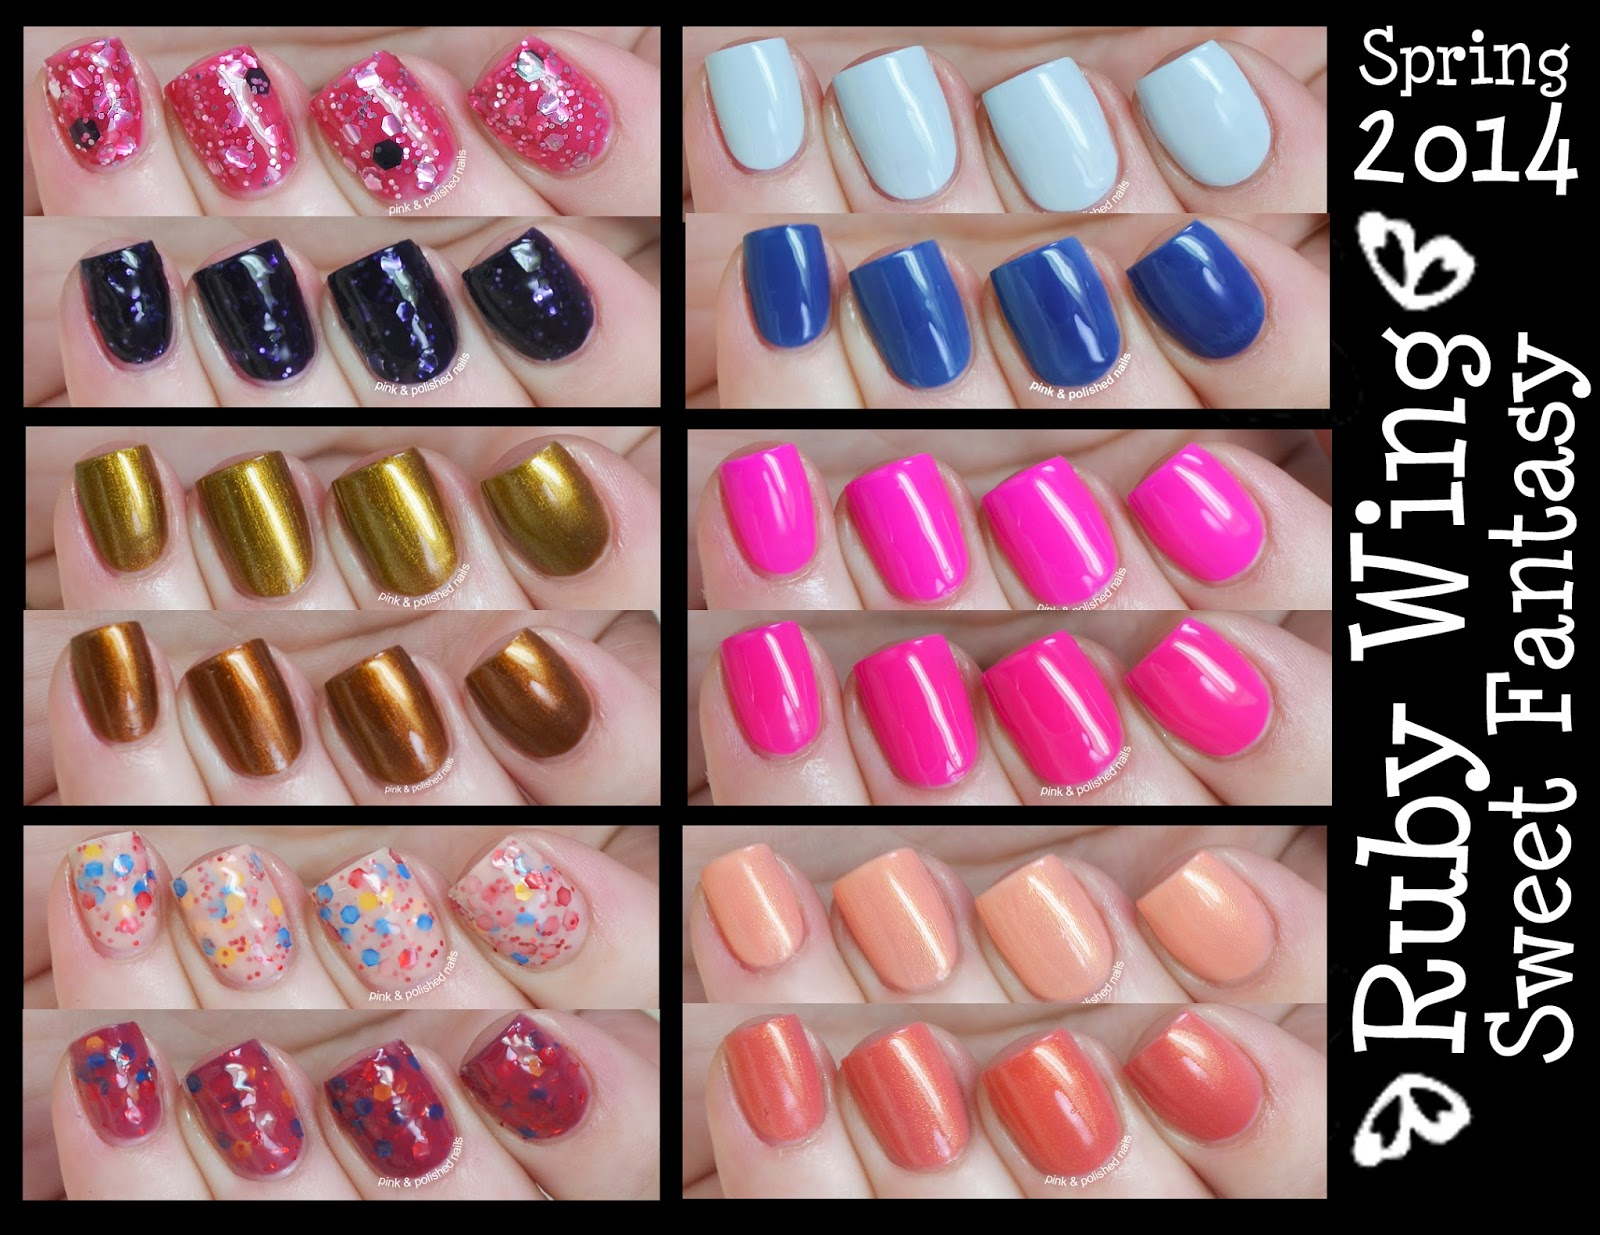 Pink & Polished: Ruby Wing Spring 2014 collection: Sweet Fantasy